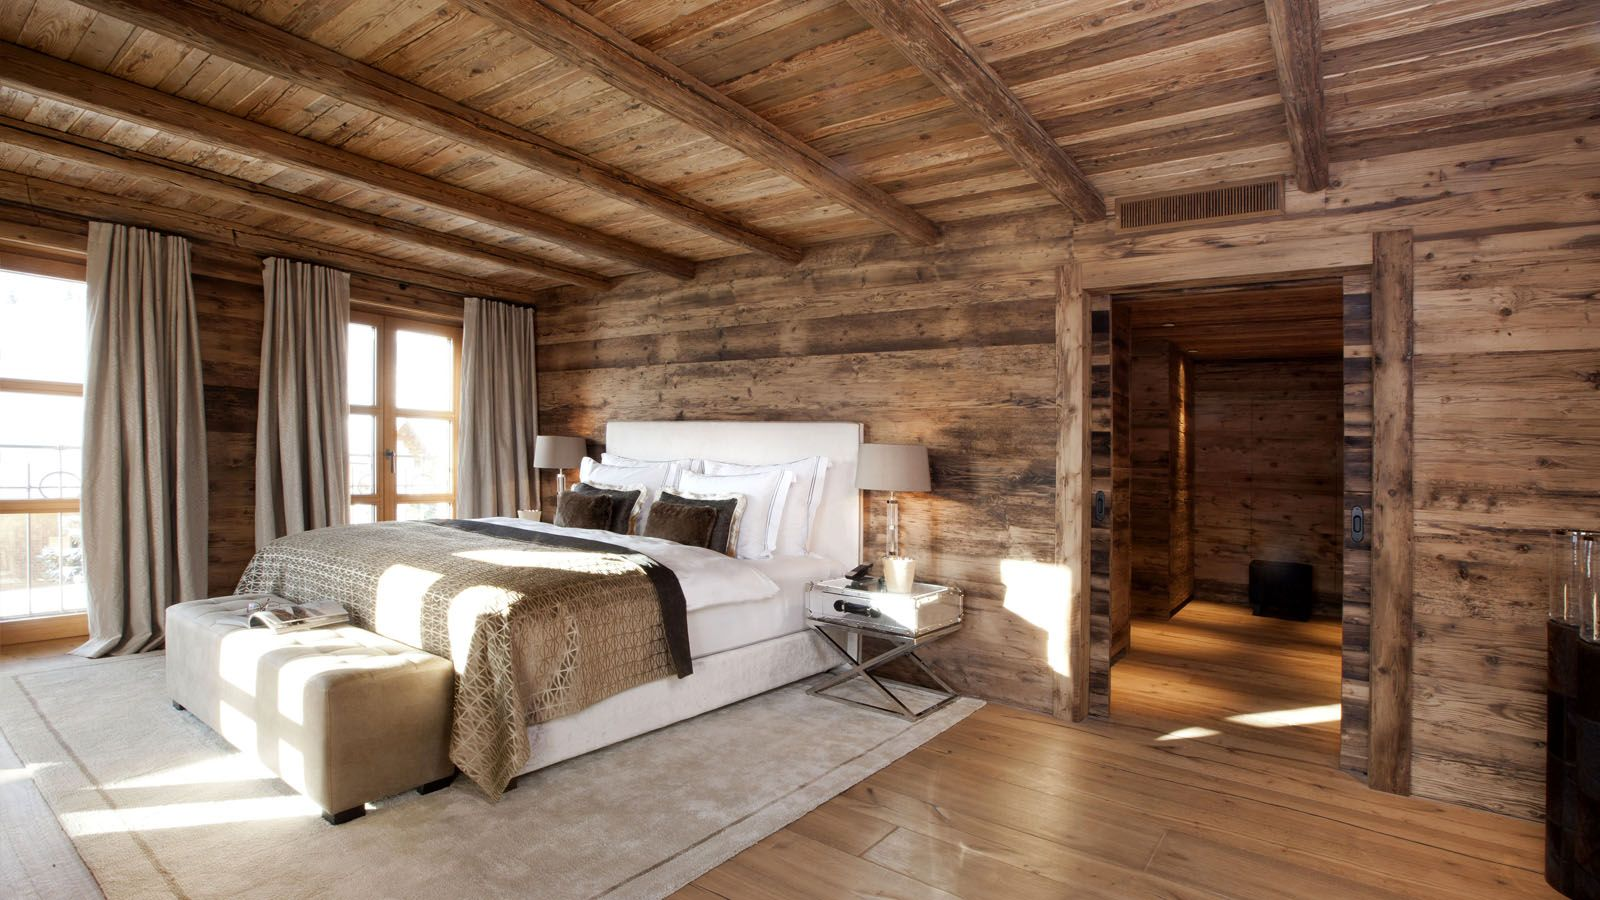 Suites chalet n oberlech living rooms pinterest for Mobili piu